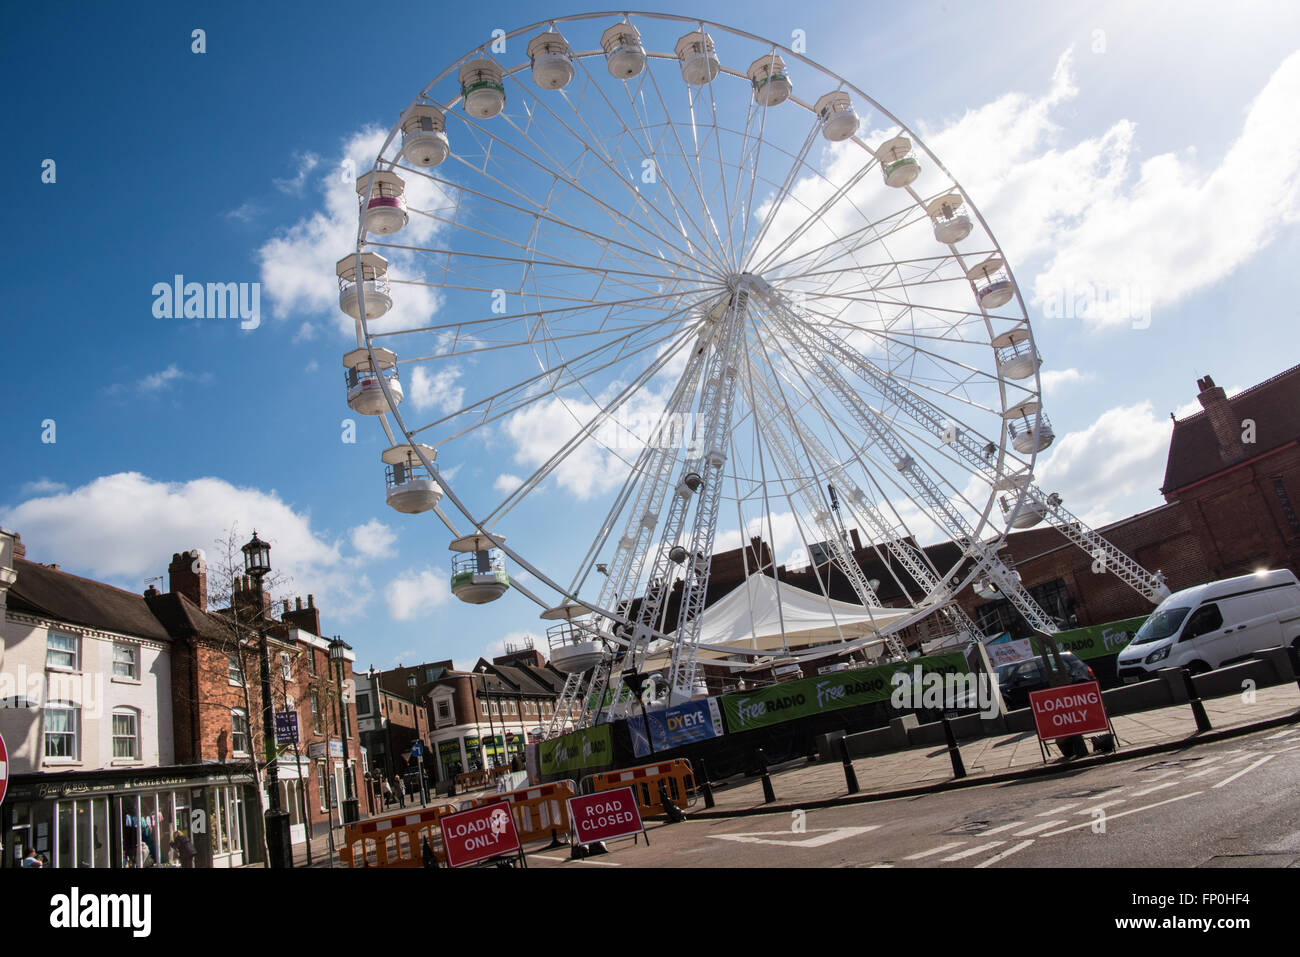 View of a large ferris wheel in historic Dudley town centre on a sunny day. It was a council bid to encourage visitors - Stock Image